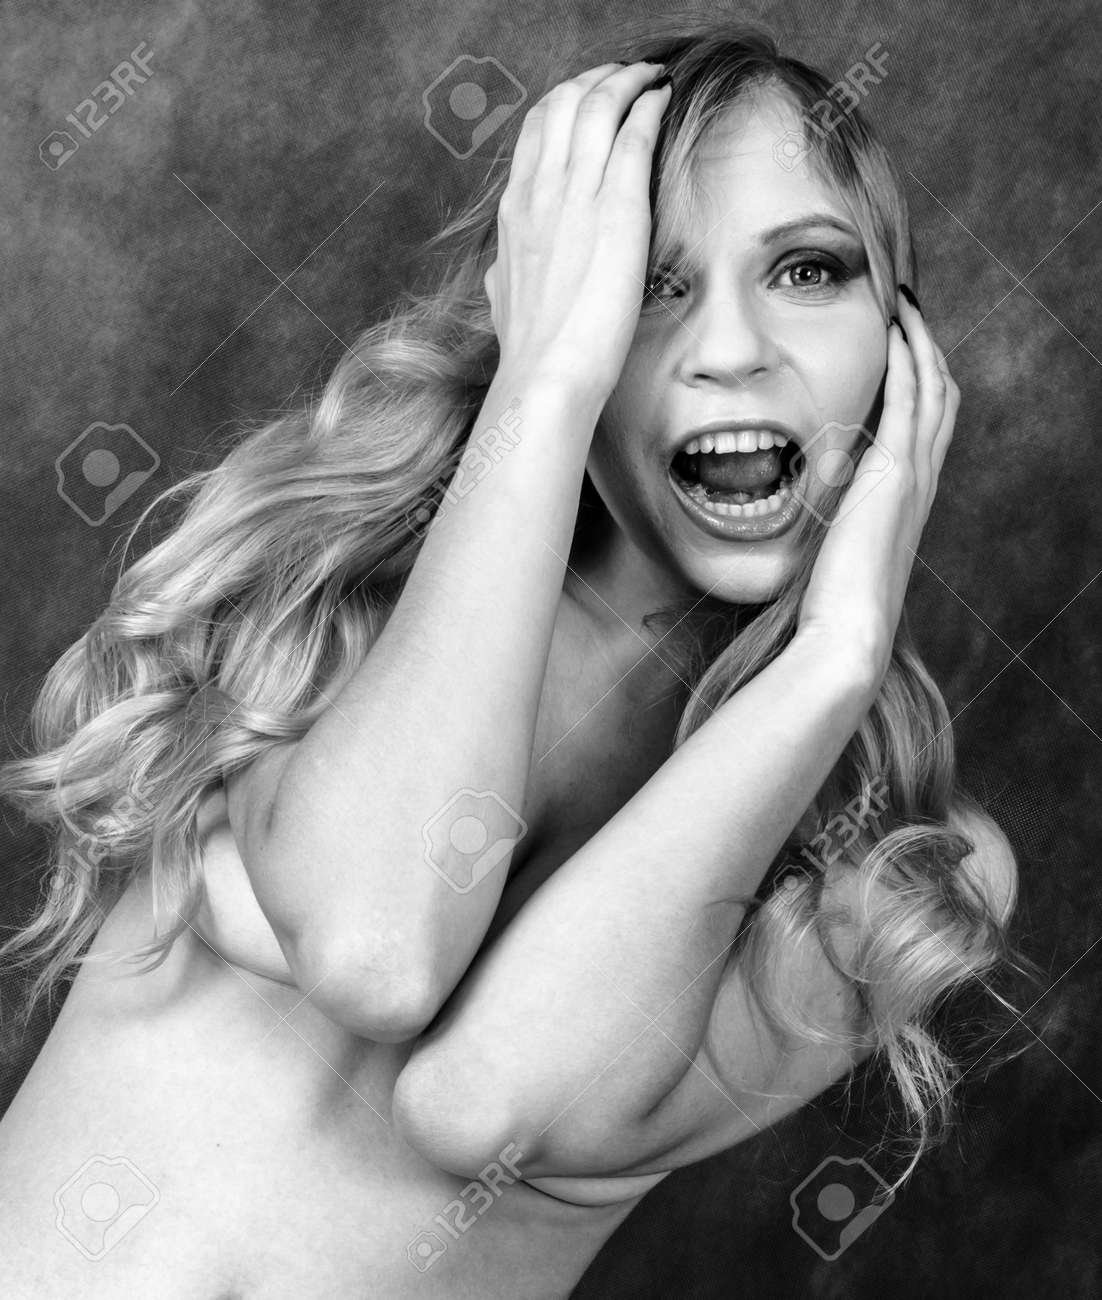 Black and white pictures of topless women photos 936